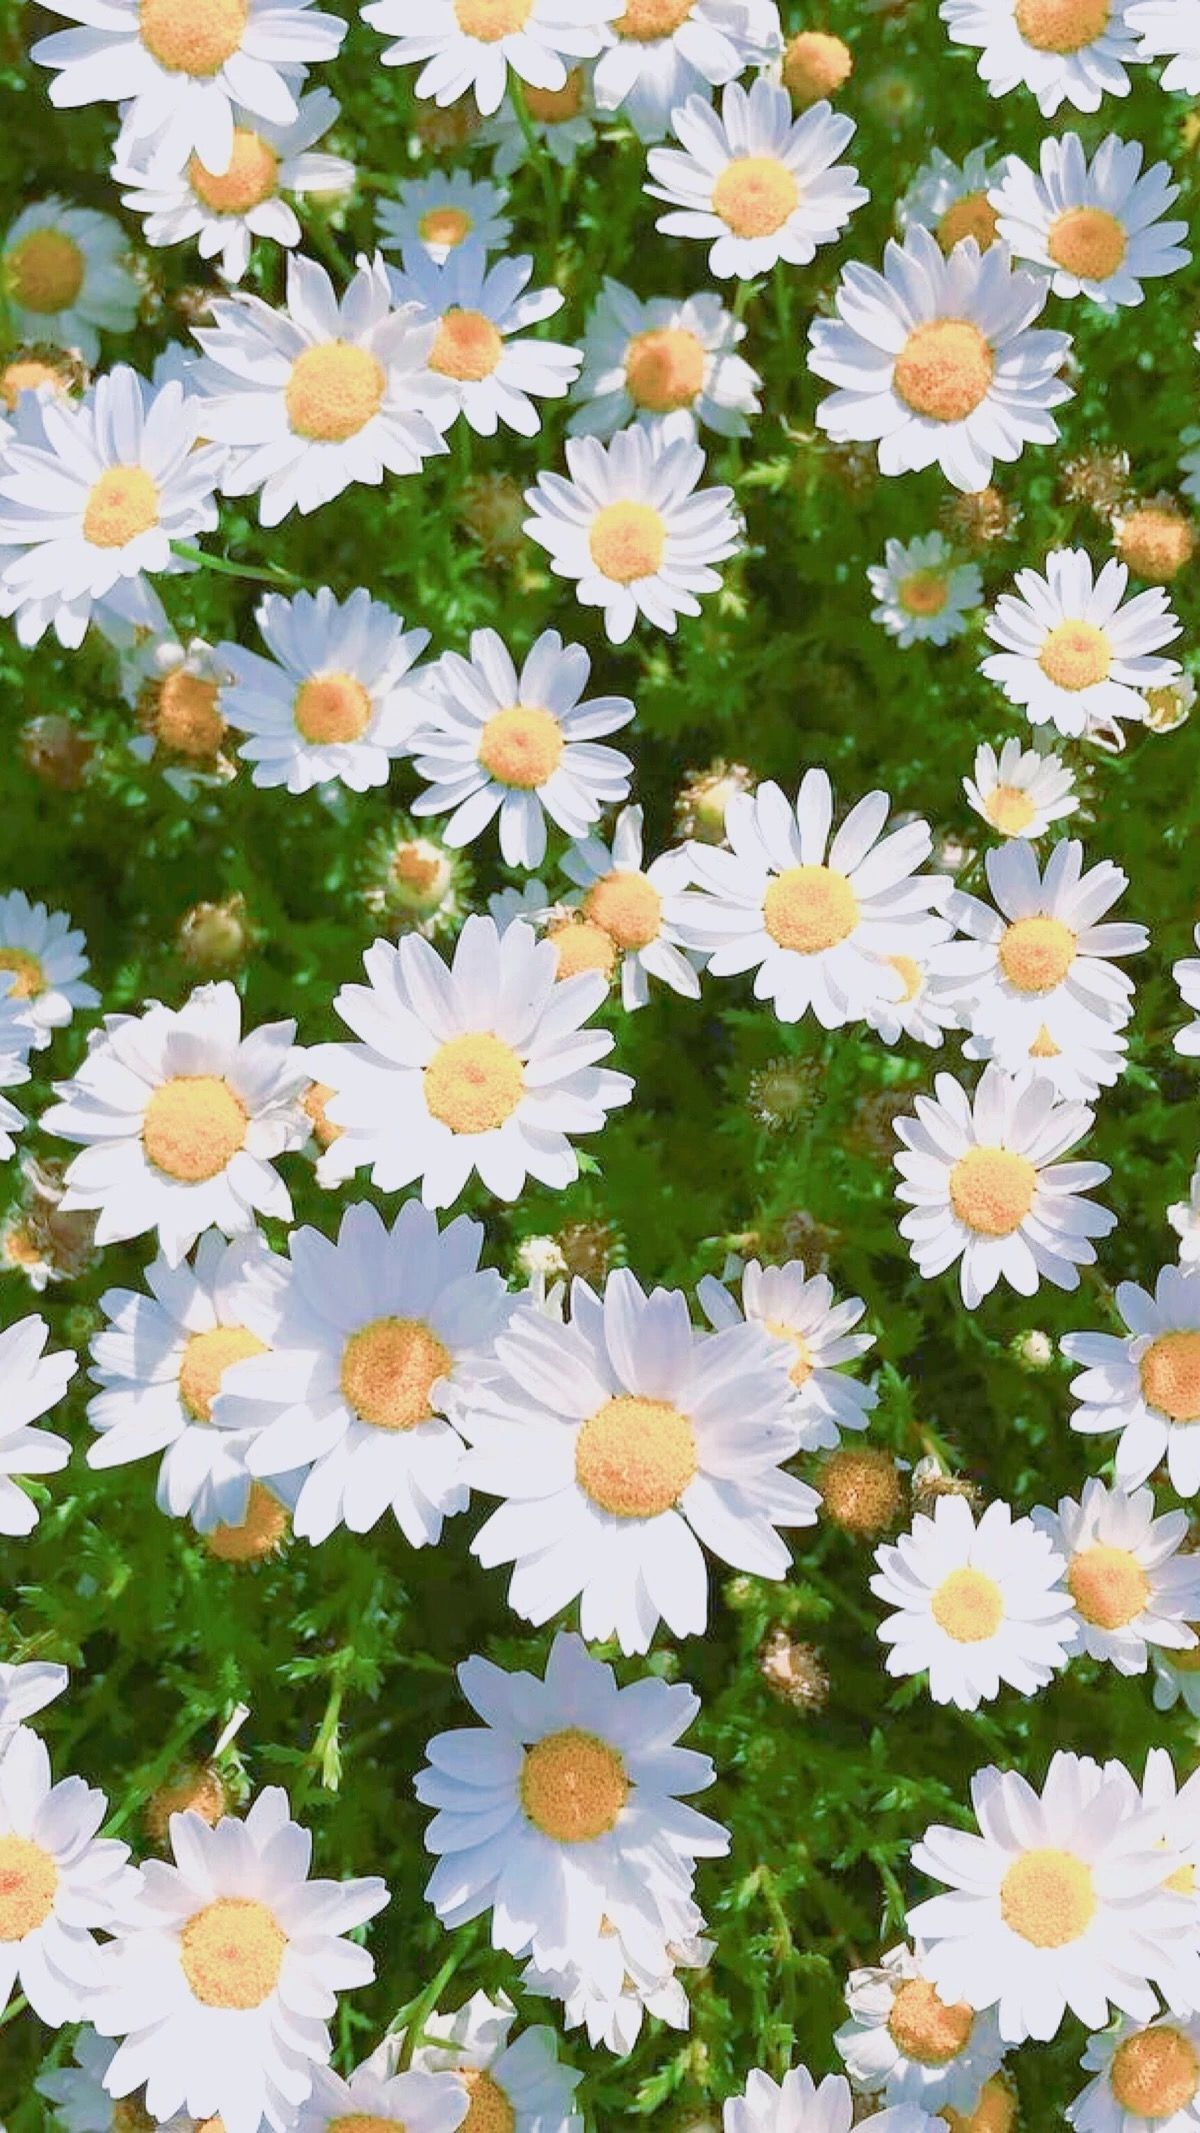 Daisies daisy flowers white colours wallpaper tumblr f daisies daisy flowers white colours wallpaper tumblr izmirmasajfo